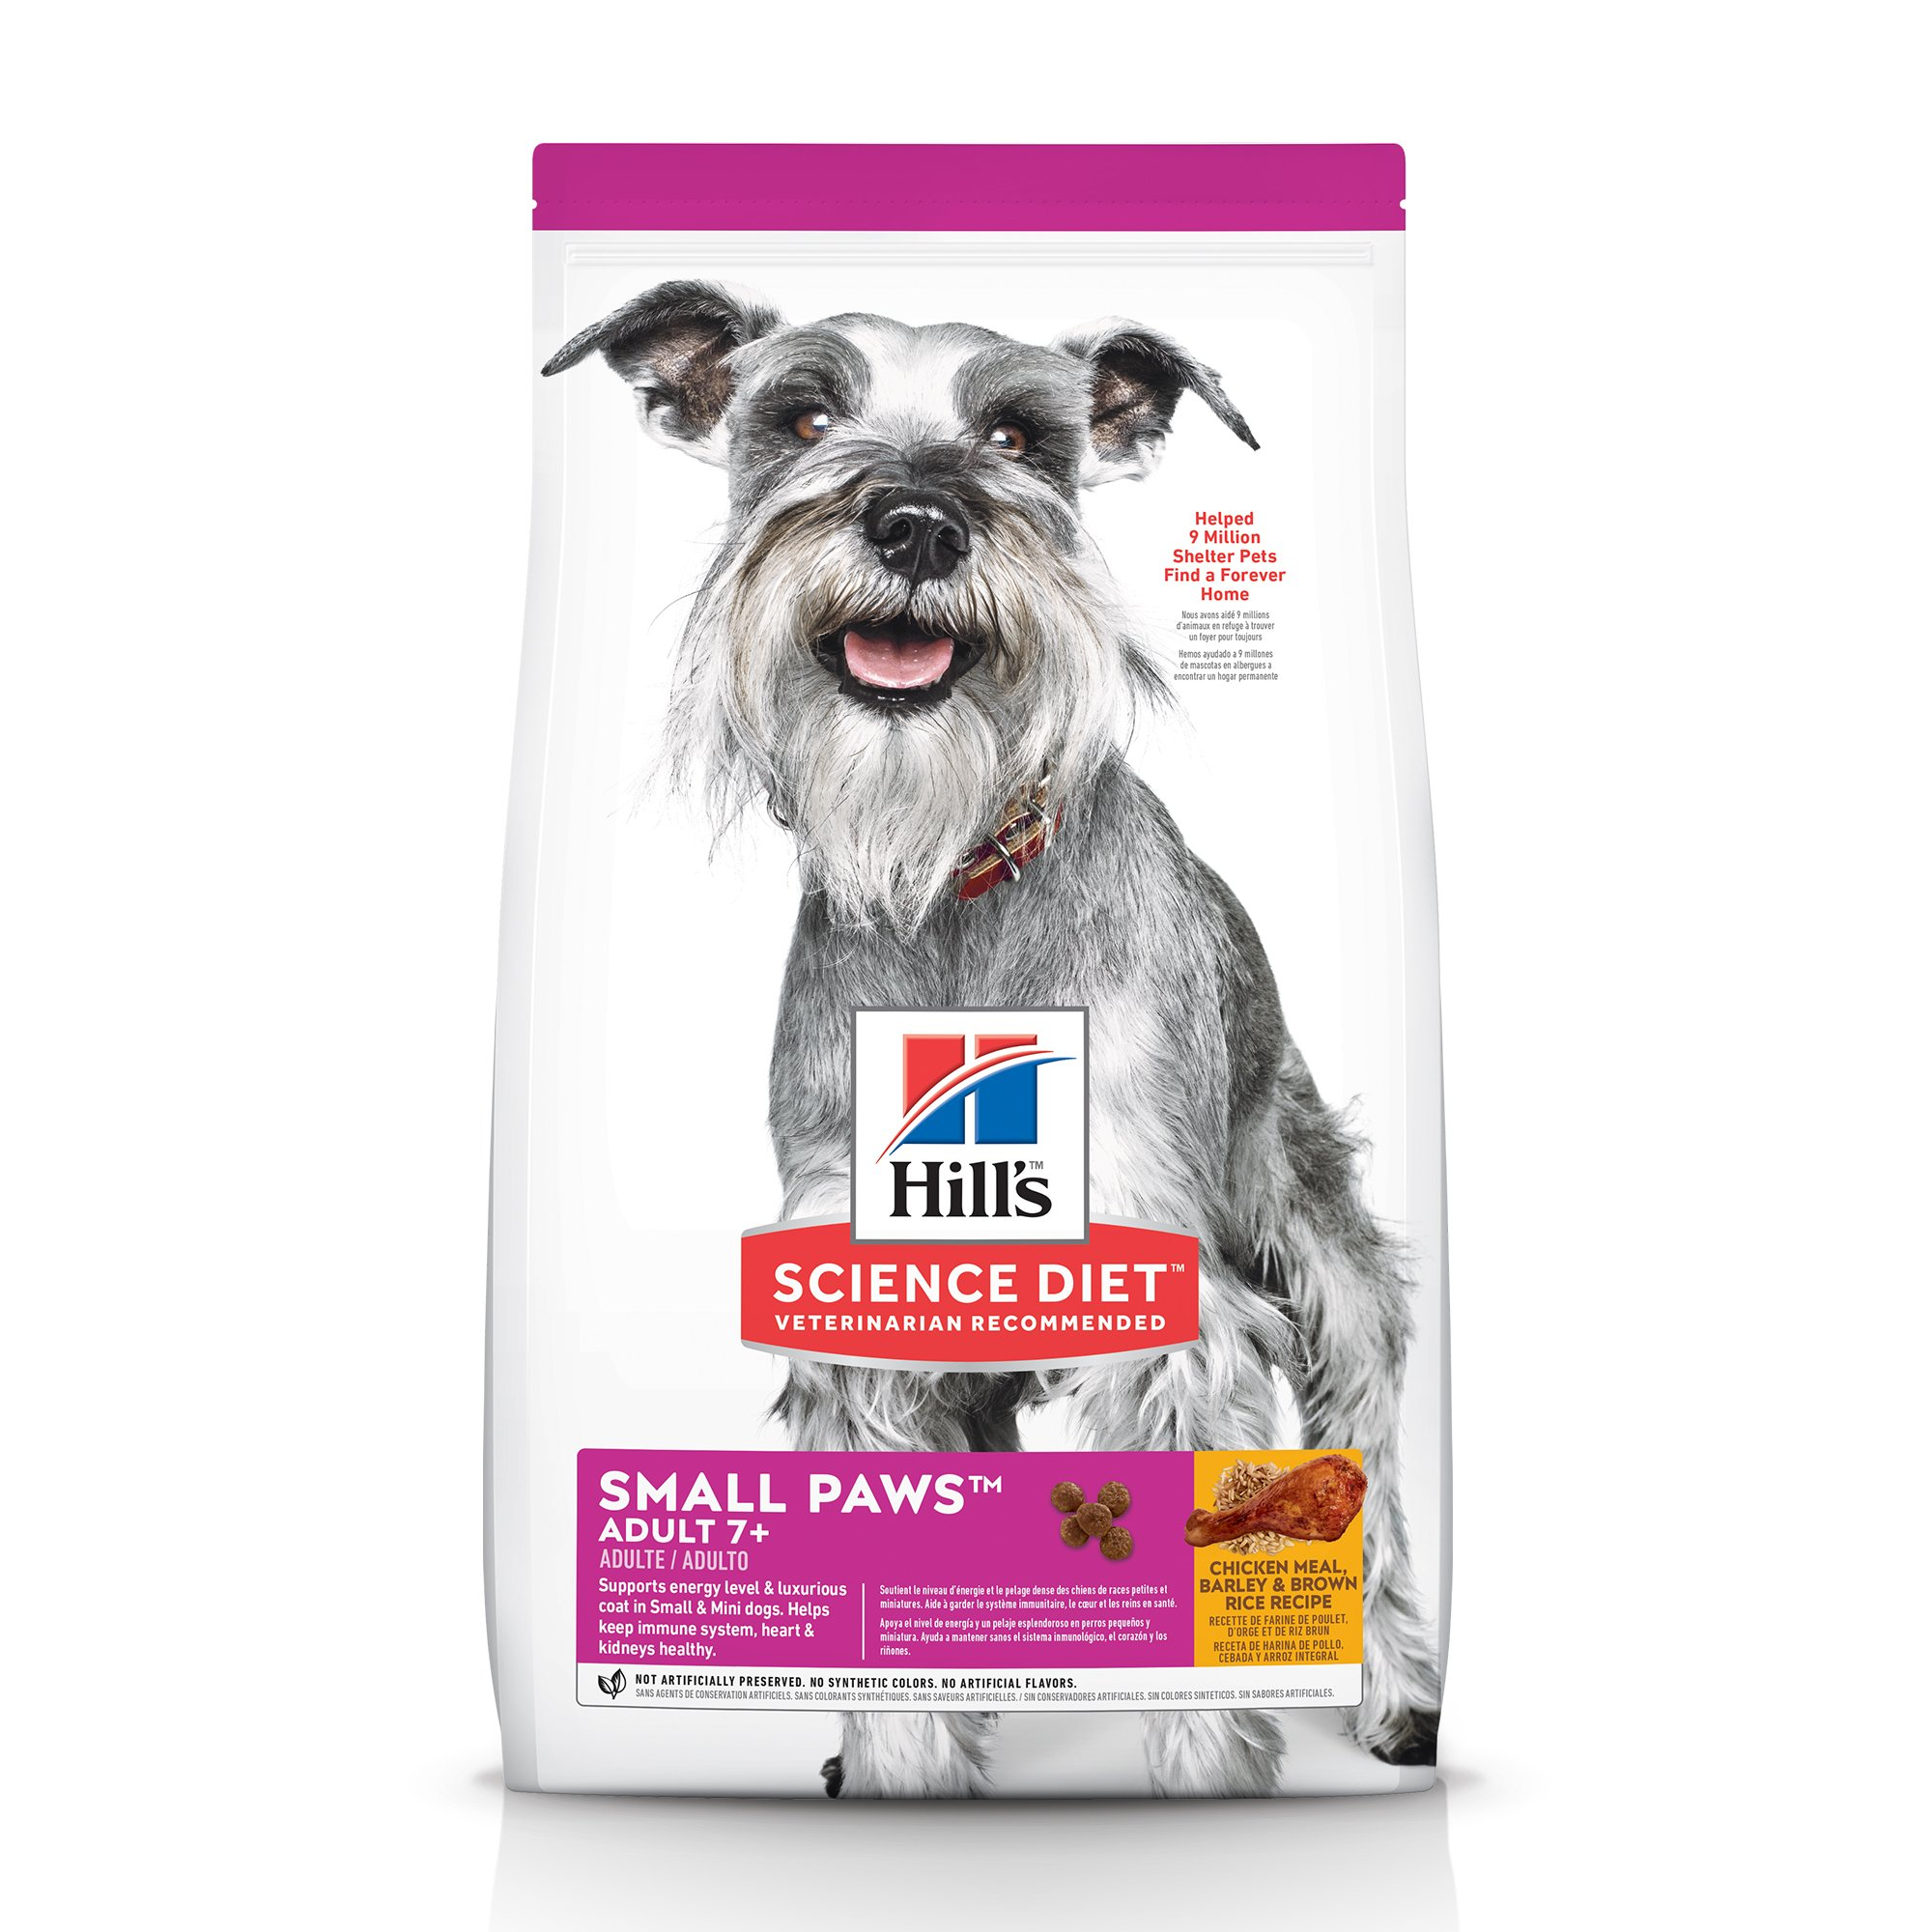 Hill S Science Diet Dog Food Petco